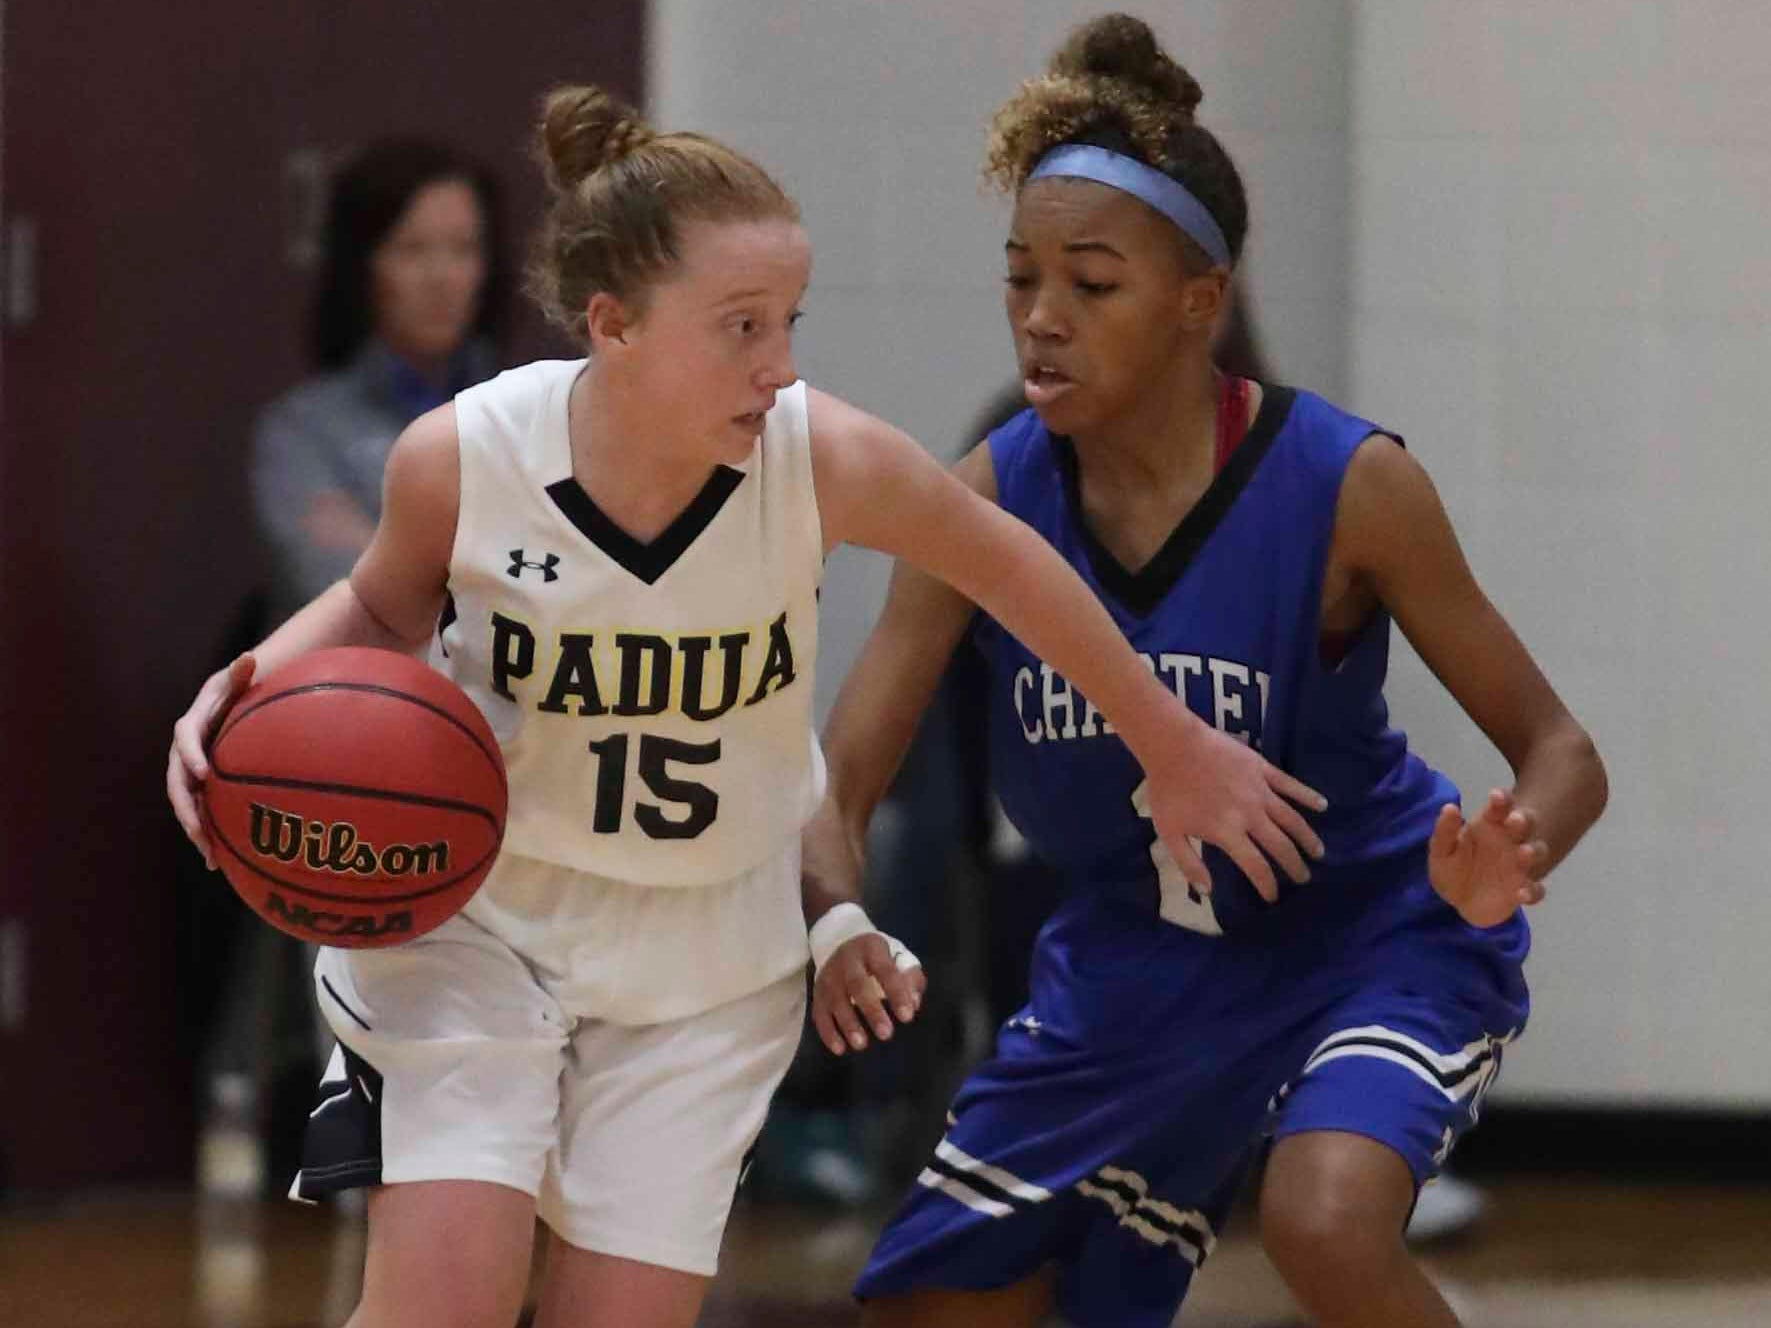 Padua's Haley Scott (left) controls against Charter's Nia Anderson in the second quarter of Padua's win in the Diamond State Classic Friday at the St. E Center.